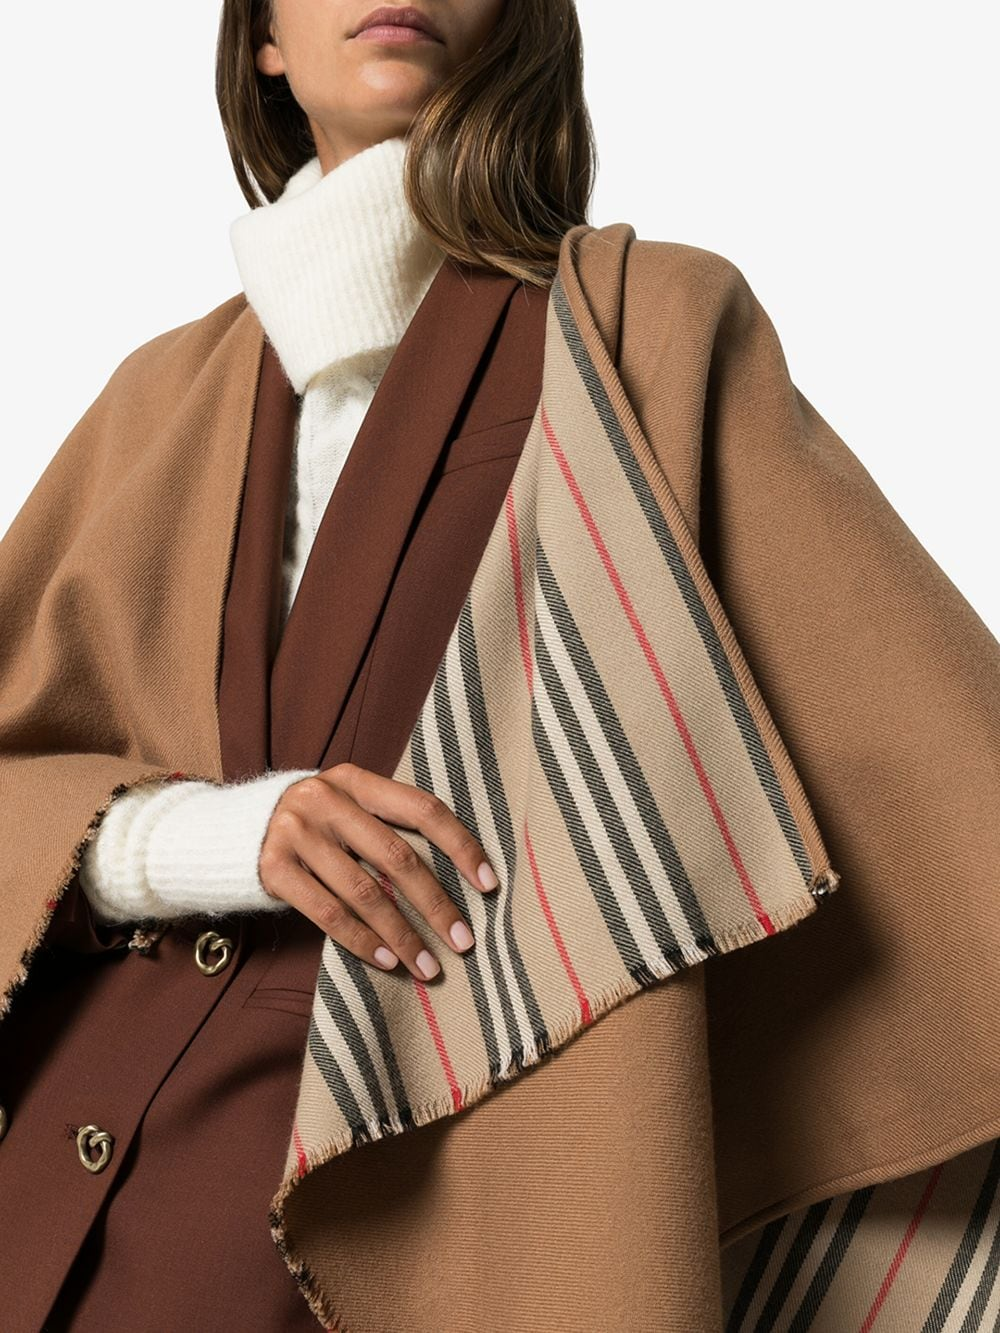 brown wool Icon poncho featuring frayed edges BURBERRY |  | 8015654-ST ICON STRIPEA7139